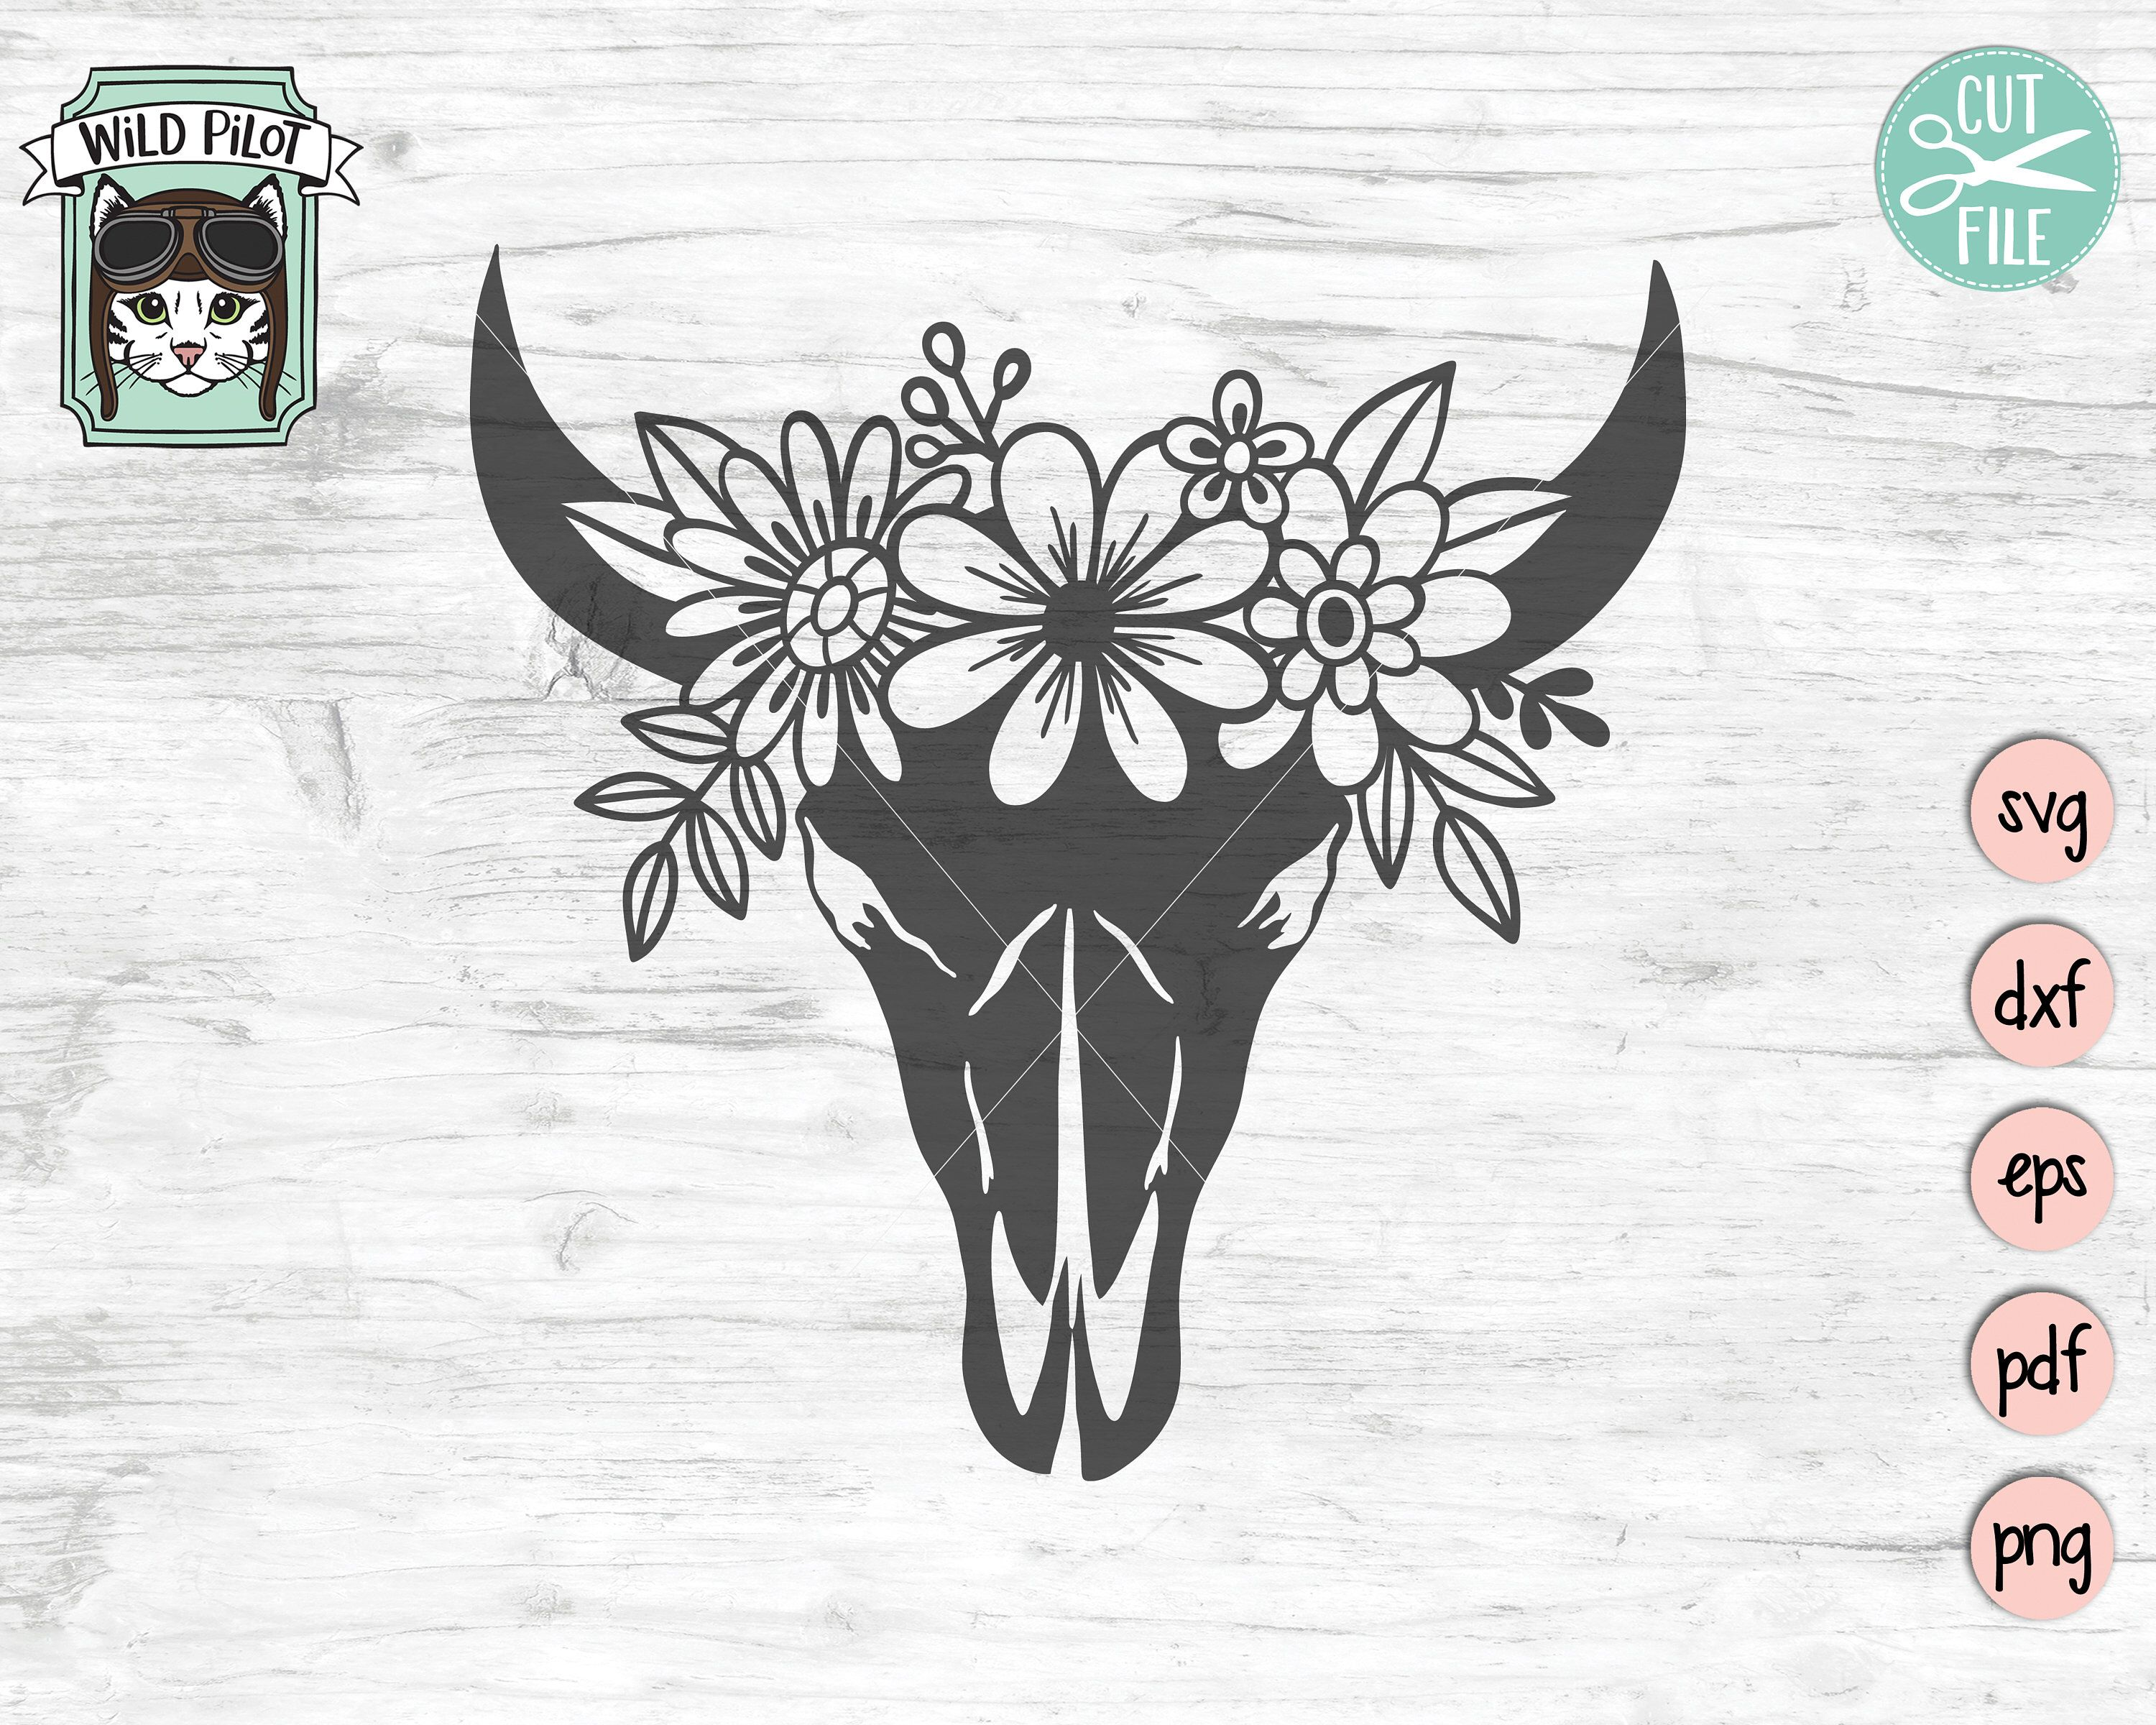 Cow Skull With Flowers Svg File Cow Skull Svg File Cow Skull Etsy In 2020 Cow Skull Flower Skull Longhorn Skull